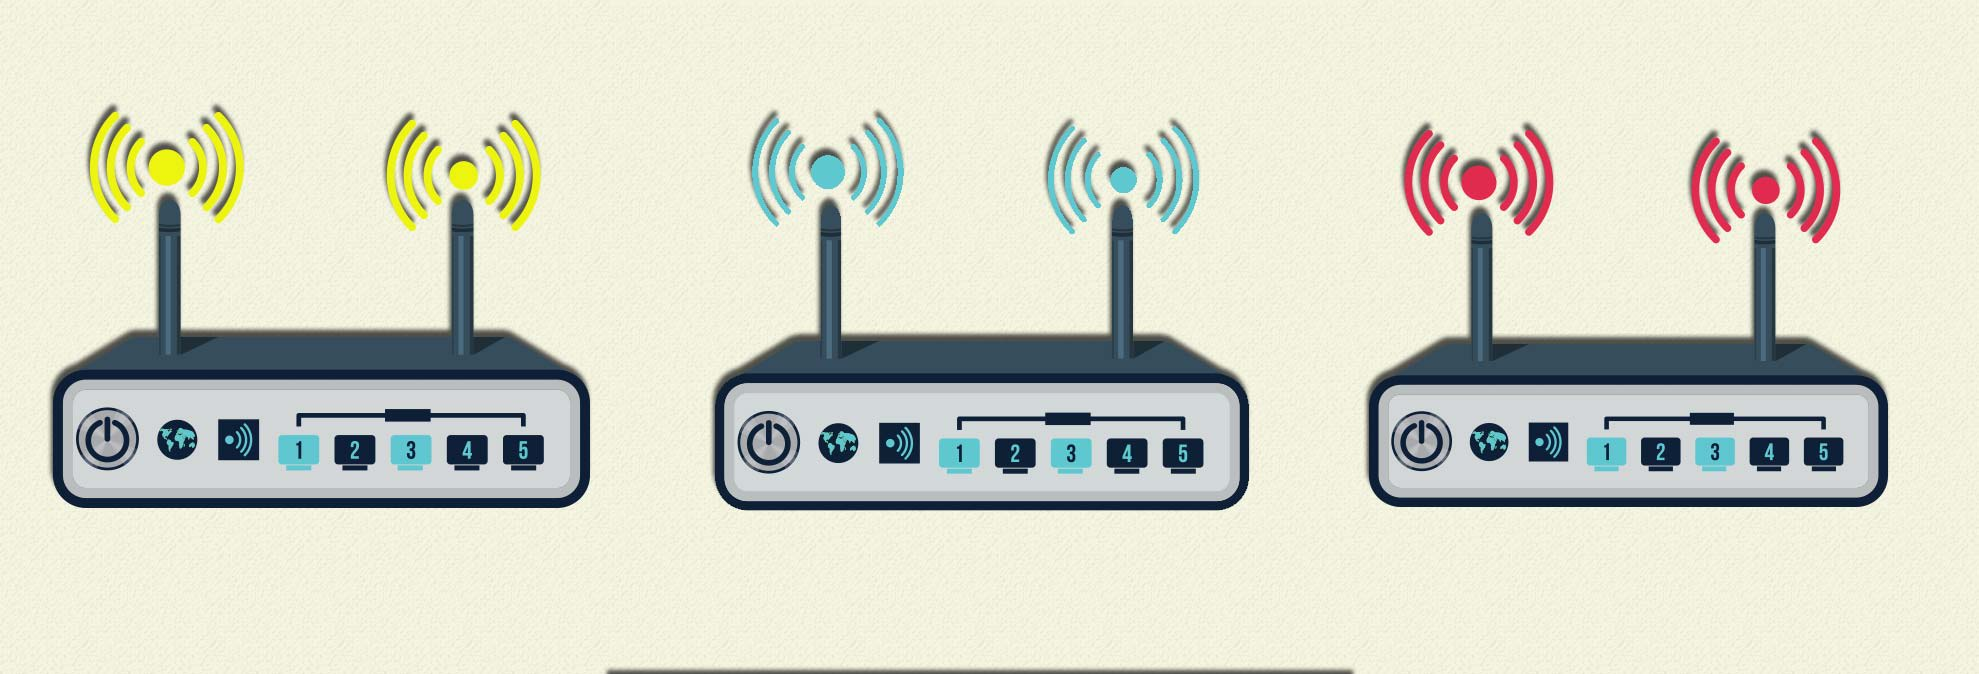 In 2018 Wifi Routers Learn New Tricks Consumer Reports